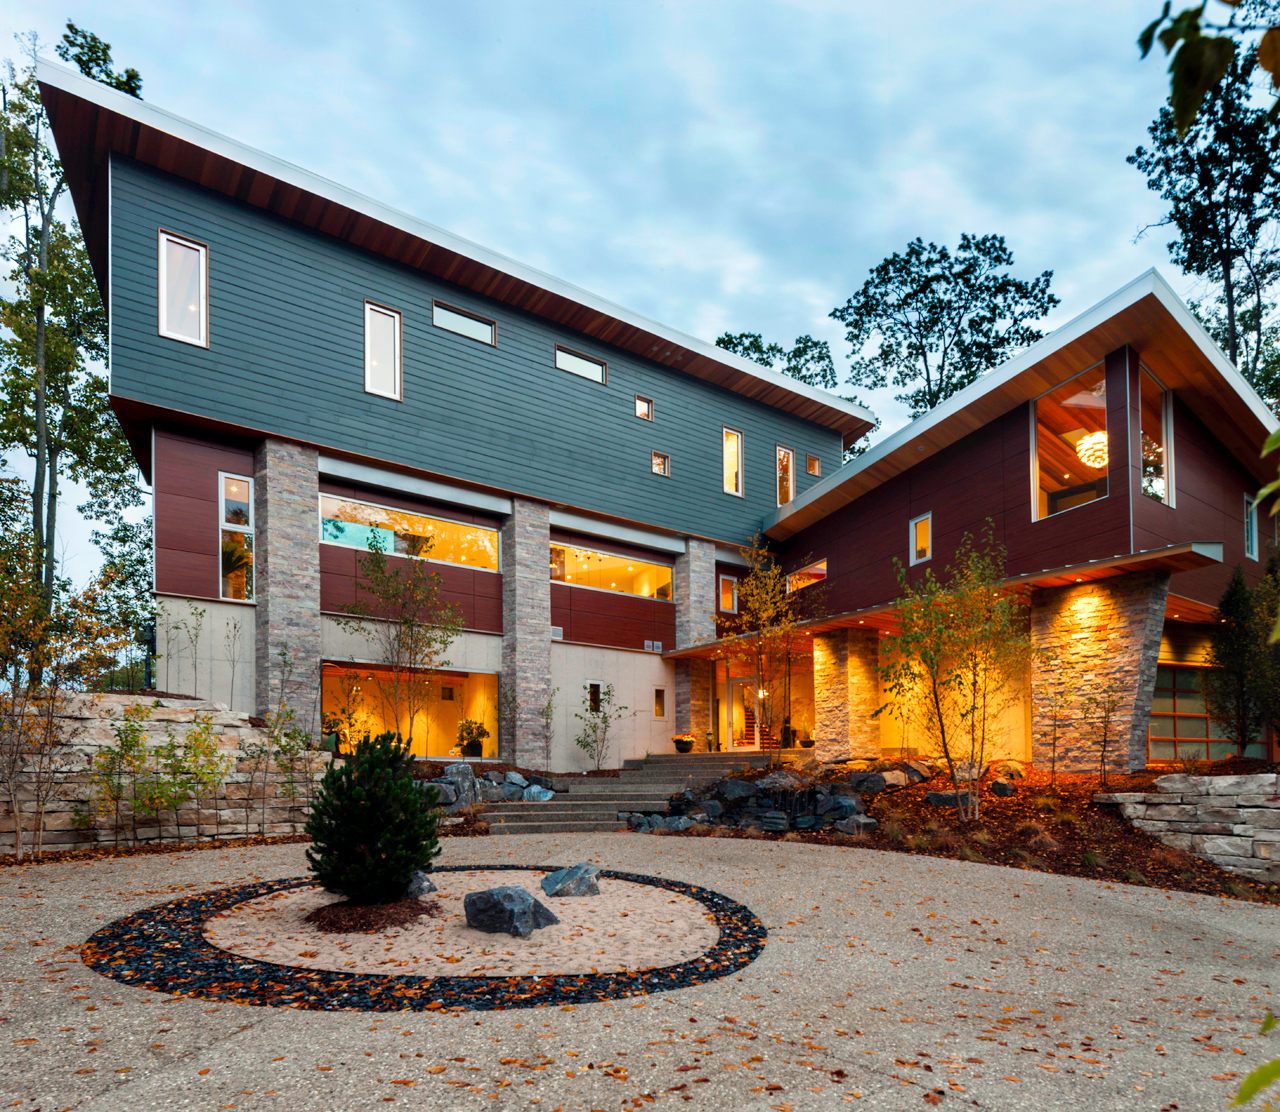 Sustainable Michigan Retreat Inspired by the Elements